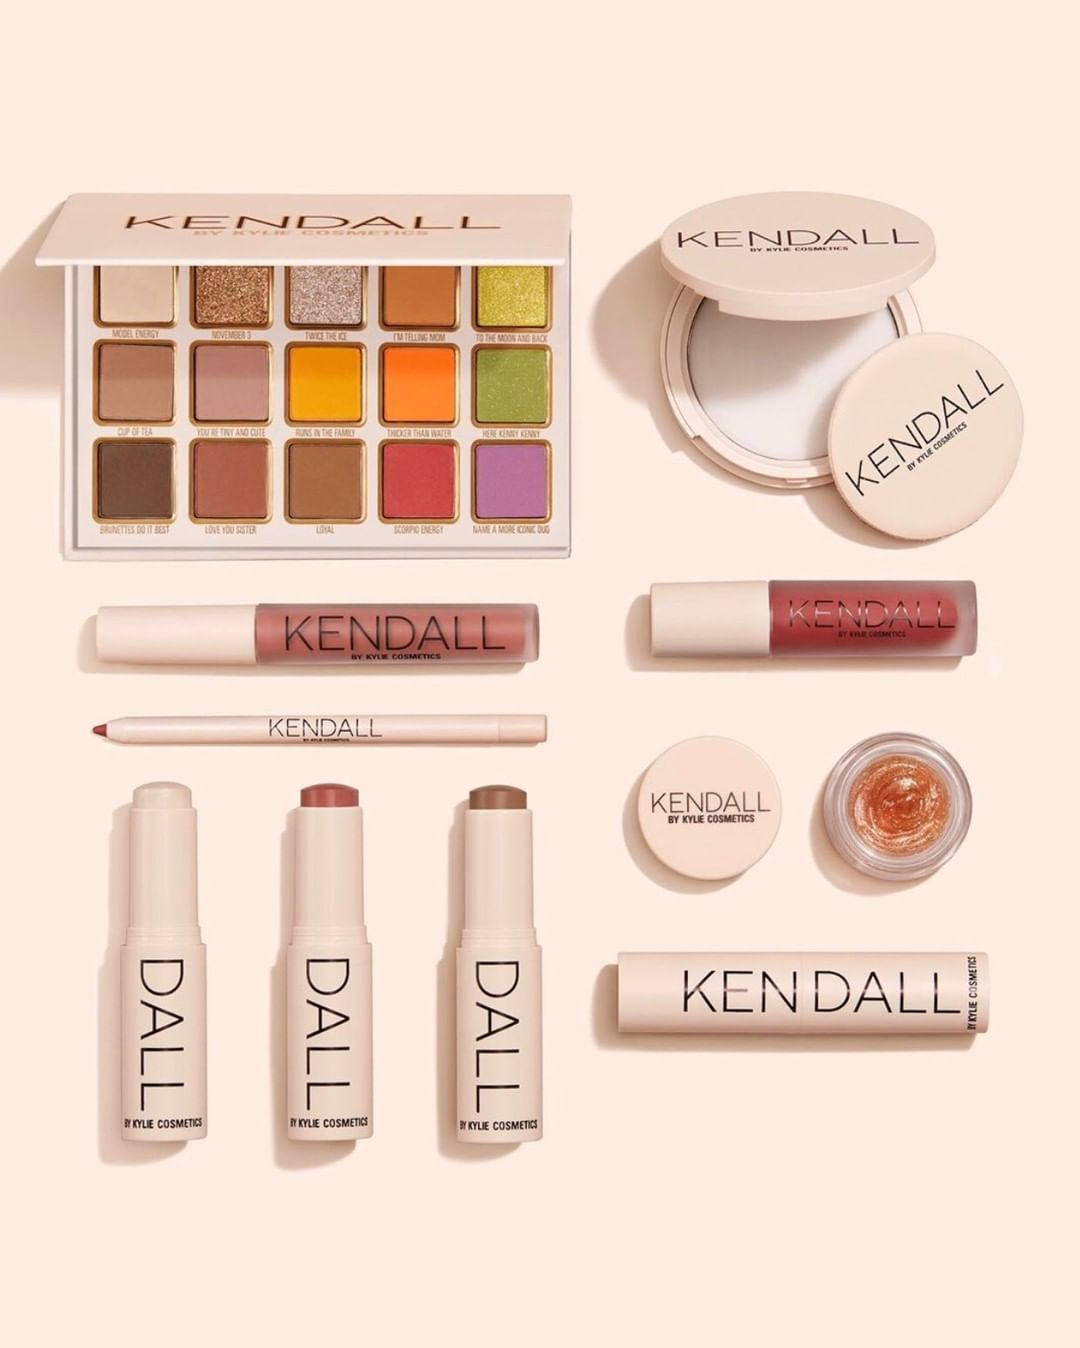 Collection Of Kendall And Kylie Cosmetics